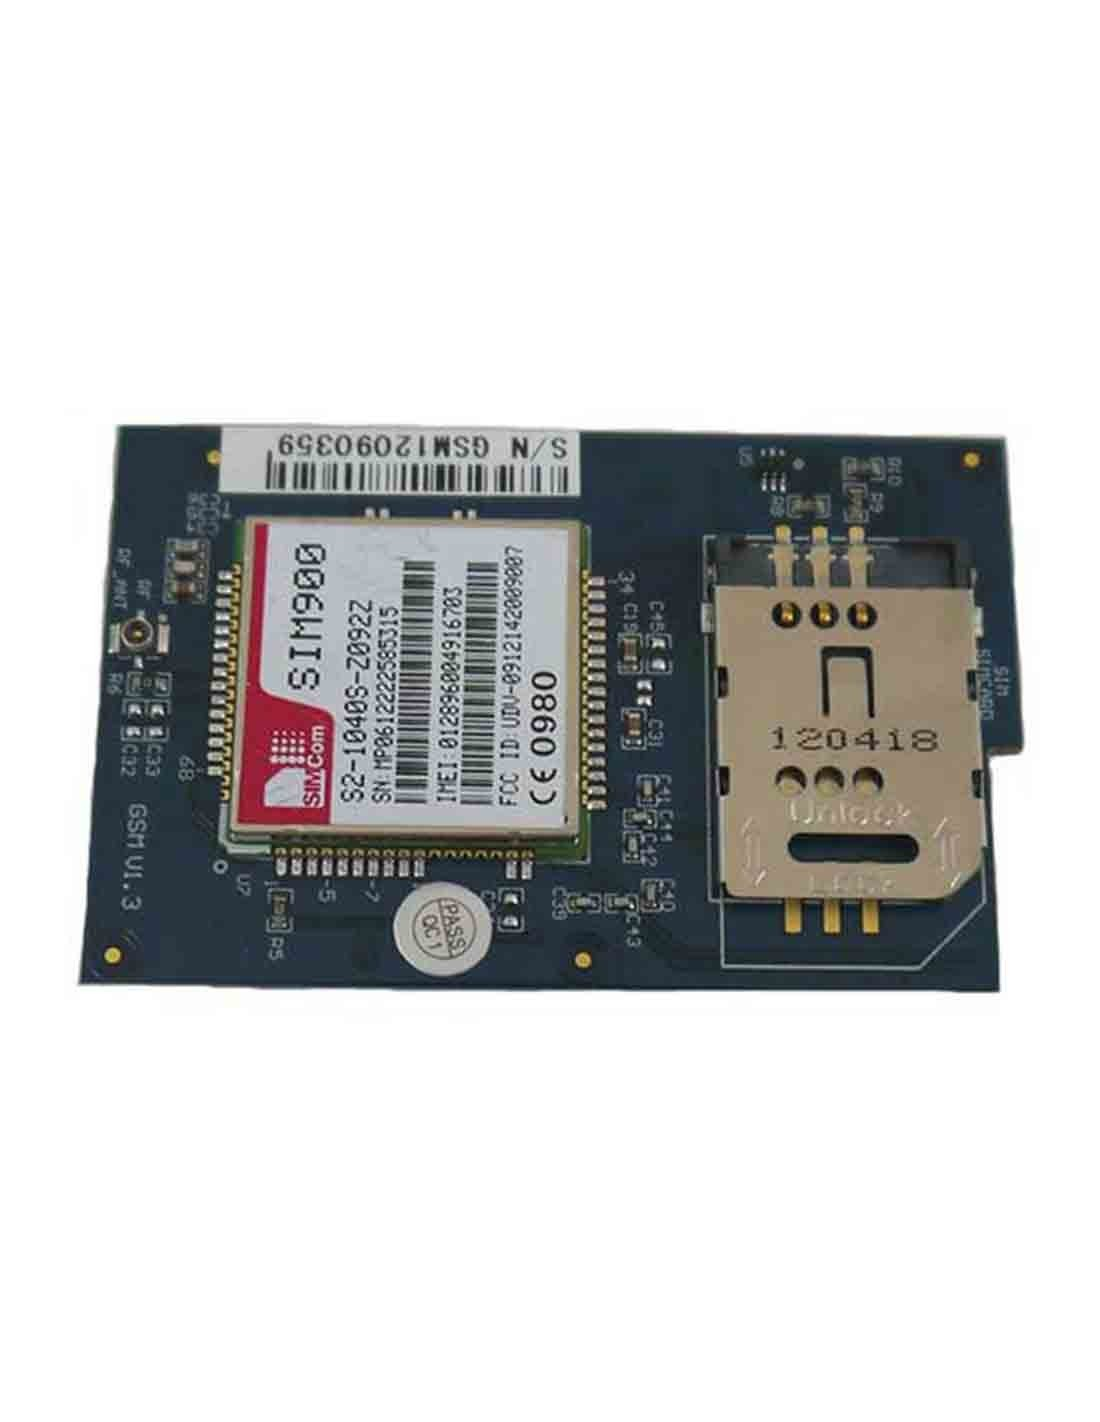 Yeastar GSM Module (1 GSM Port) YST-GSM is compatible with MyPBX /NeoGate, and S-Series VoIP PBX.